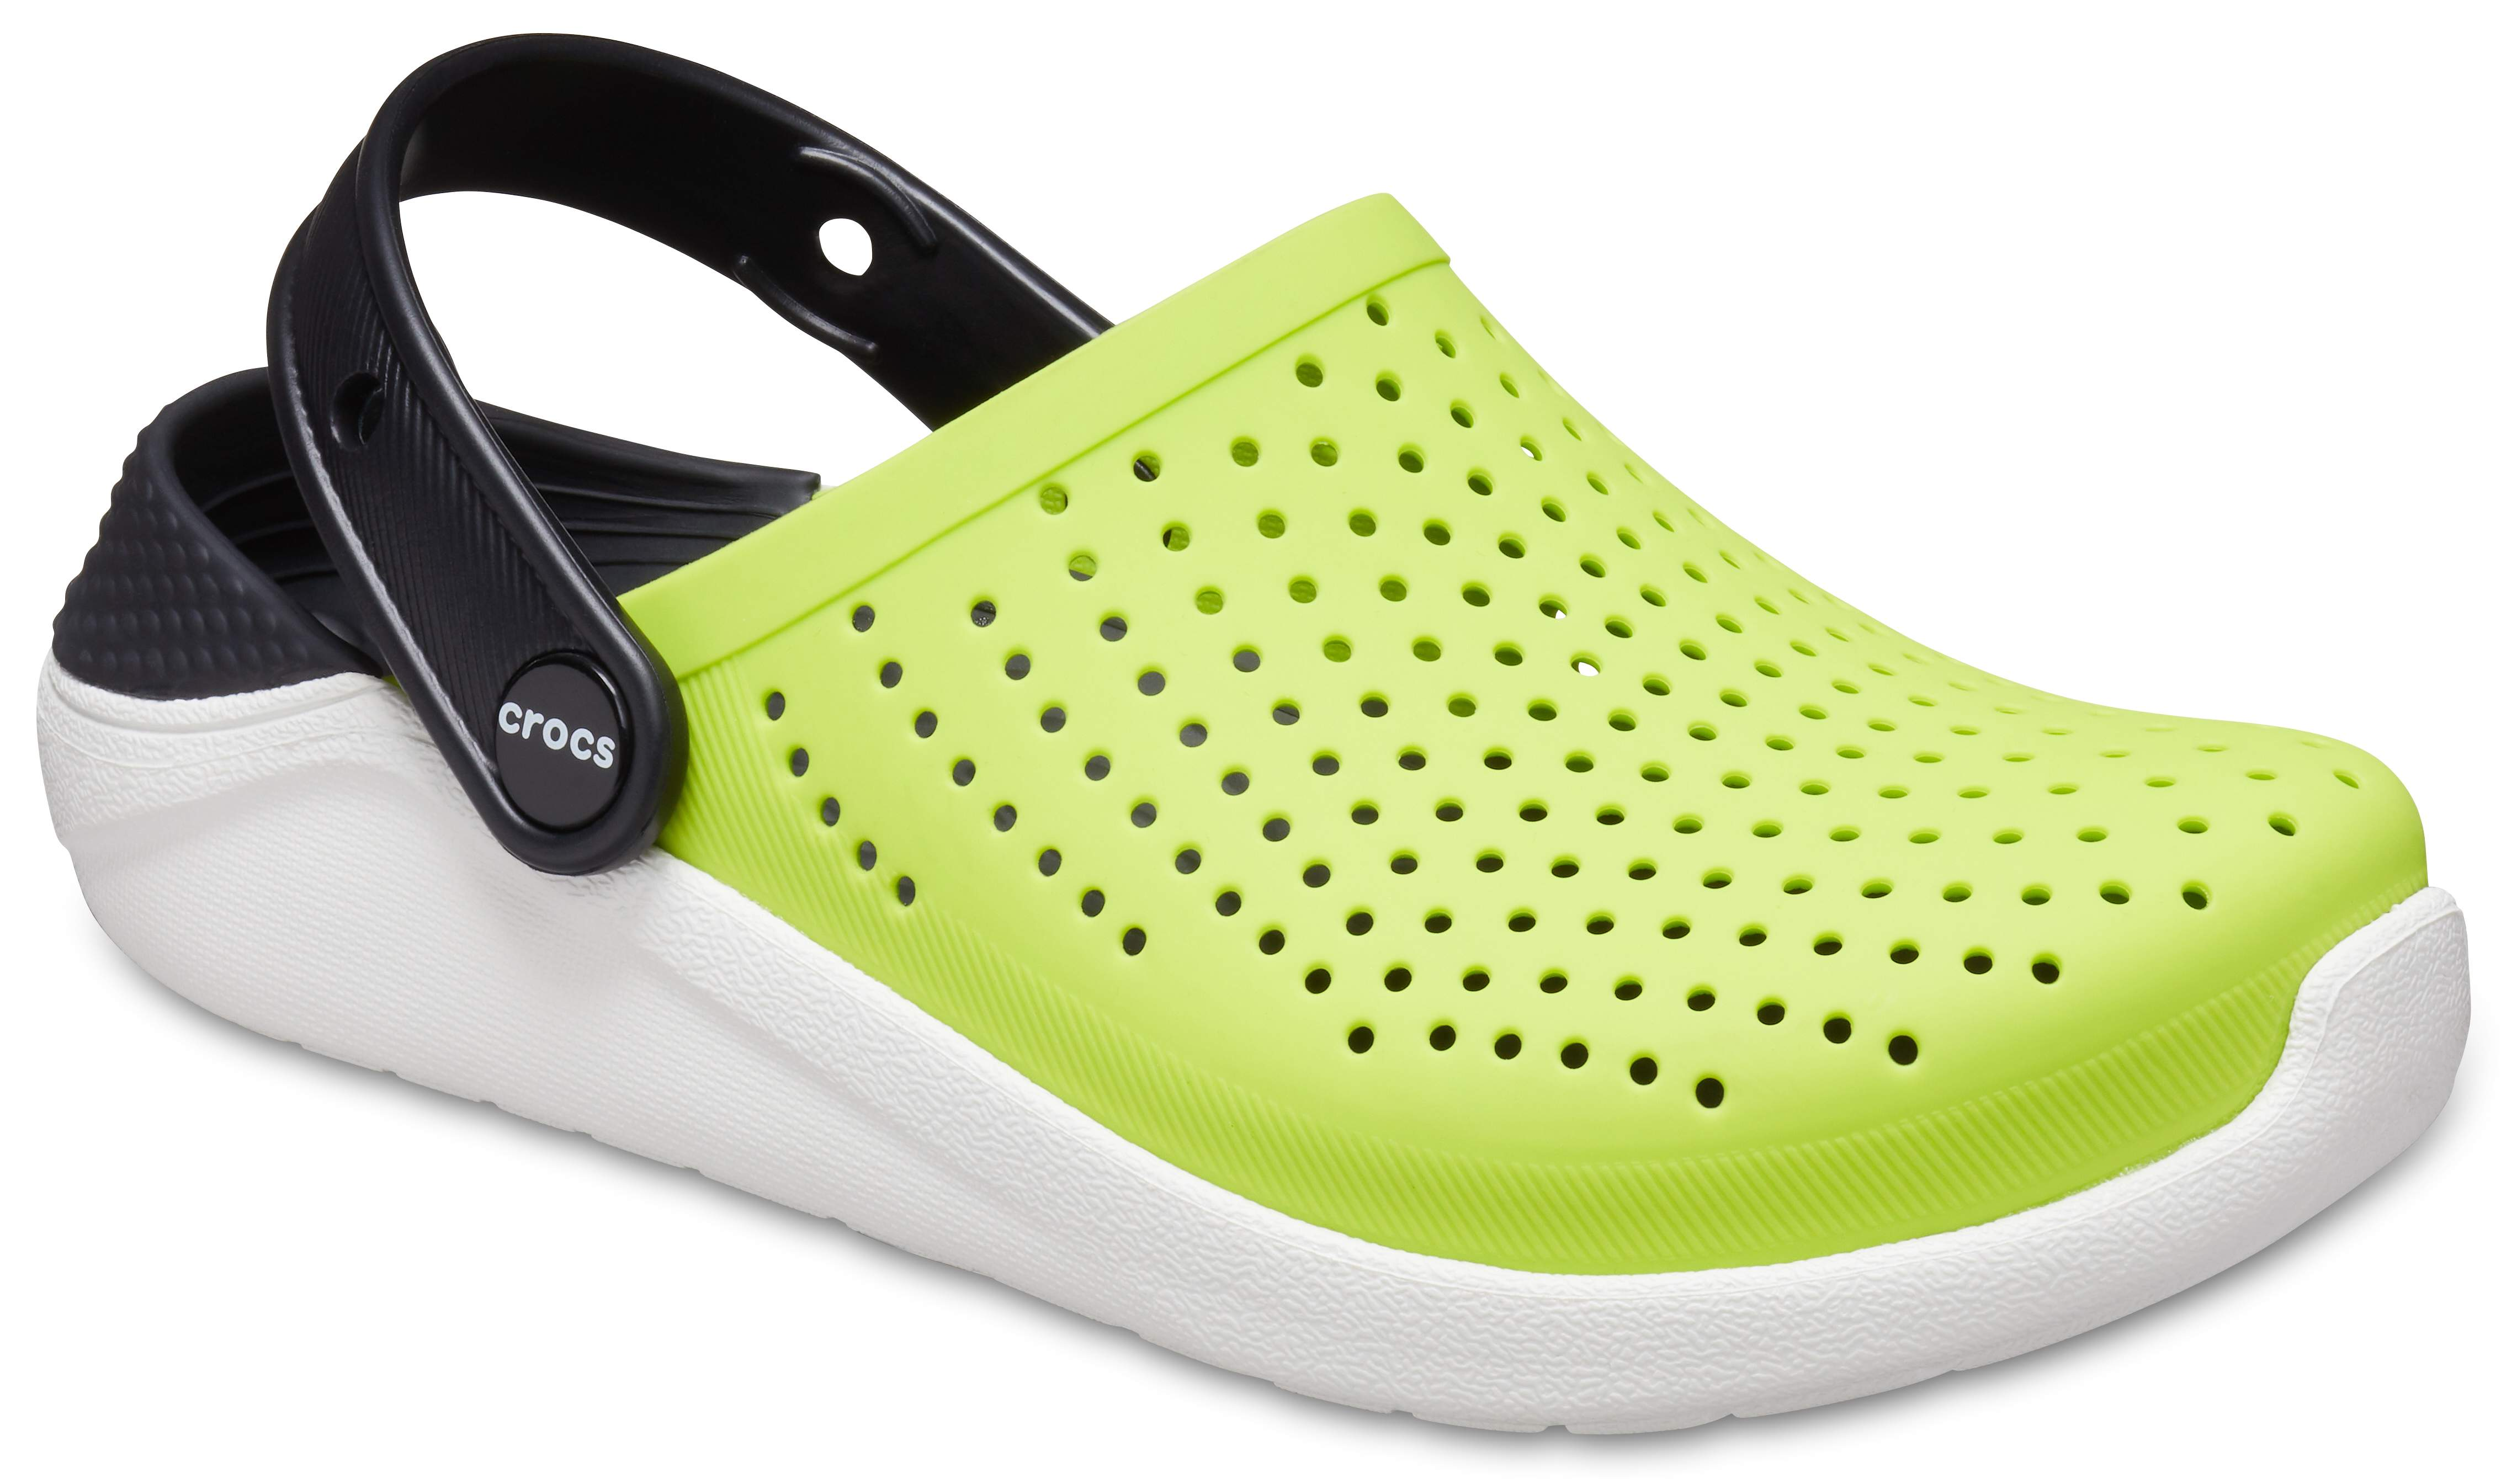 5 US Toddler Crocs Kids LiteRide Clog Neon Magenta Casual and Comfortable Athletic Kids Shoes